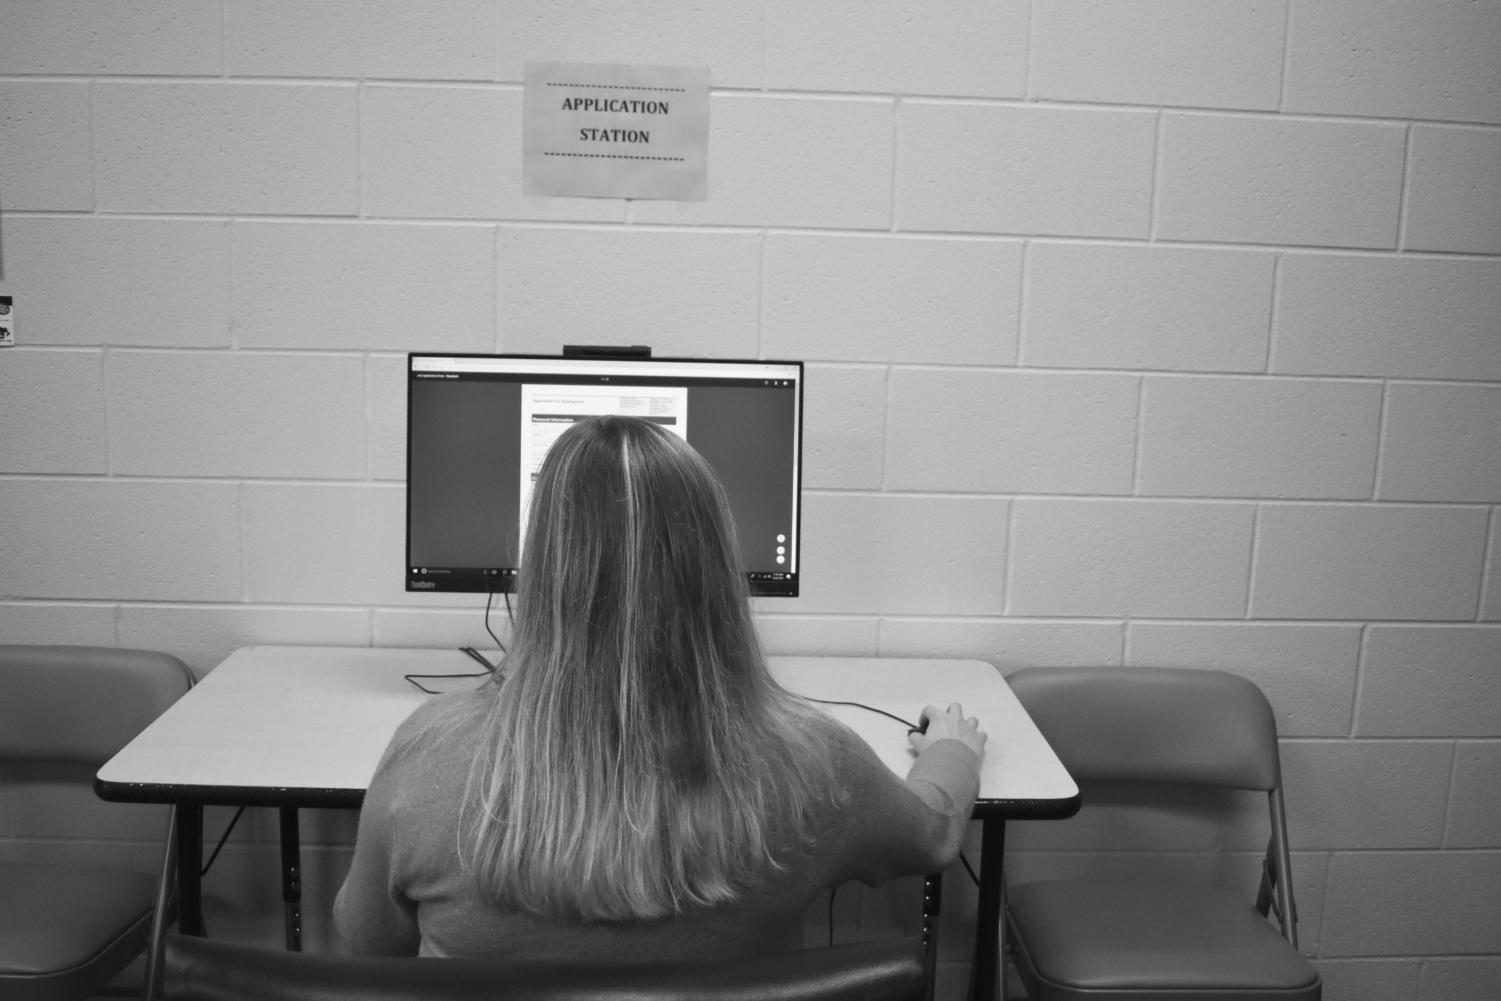 A student works at the Application Station in the Youth Service Center.